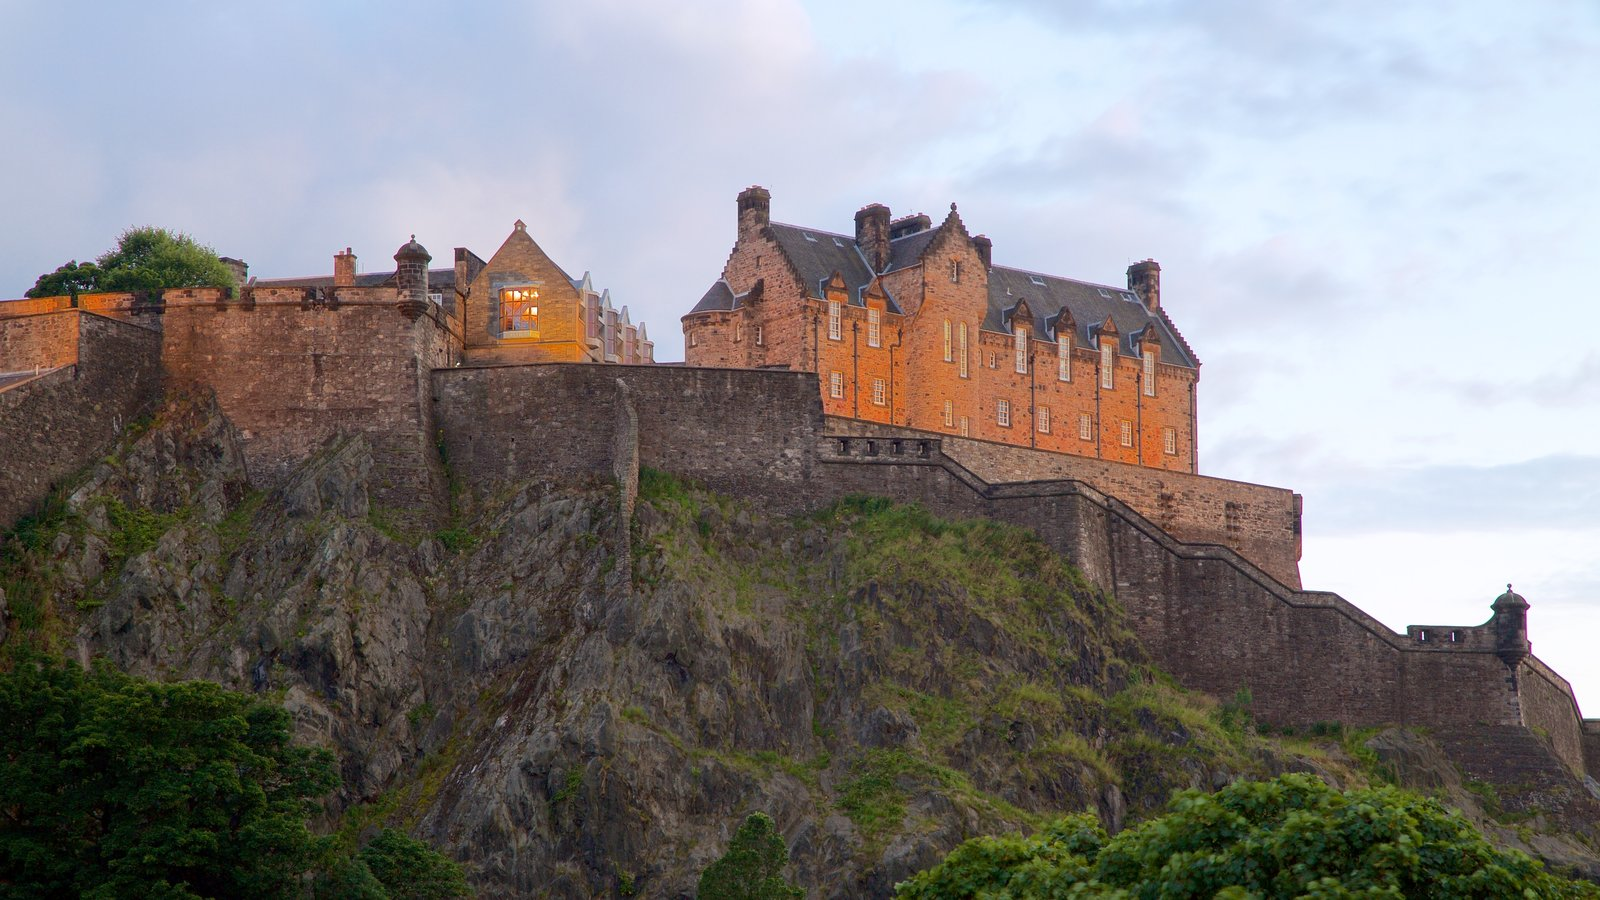 Edinburgh Castle showing chateau or palace and heritage elements